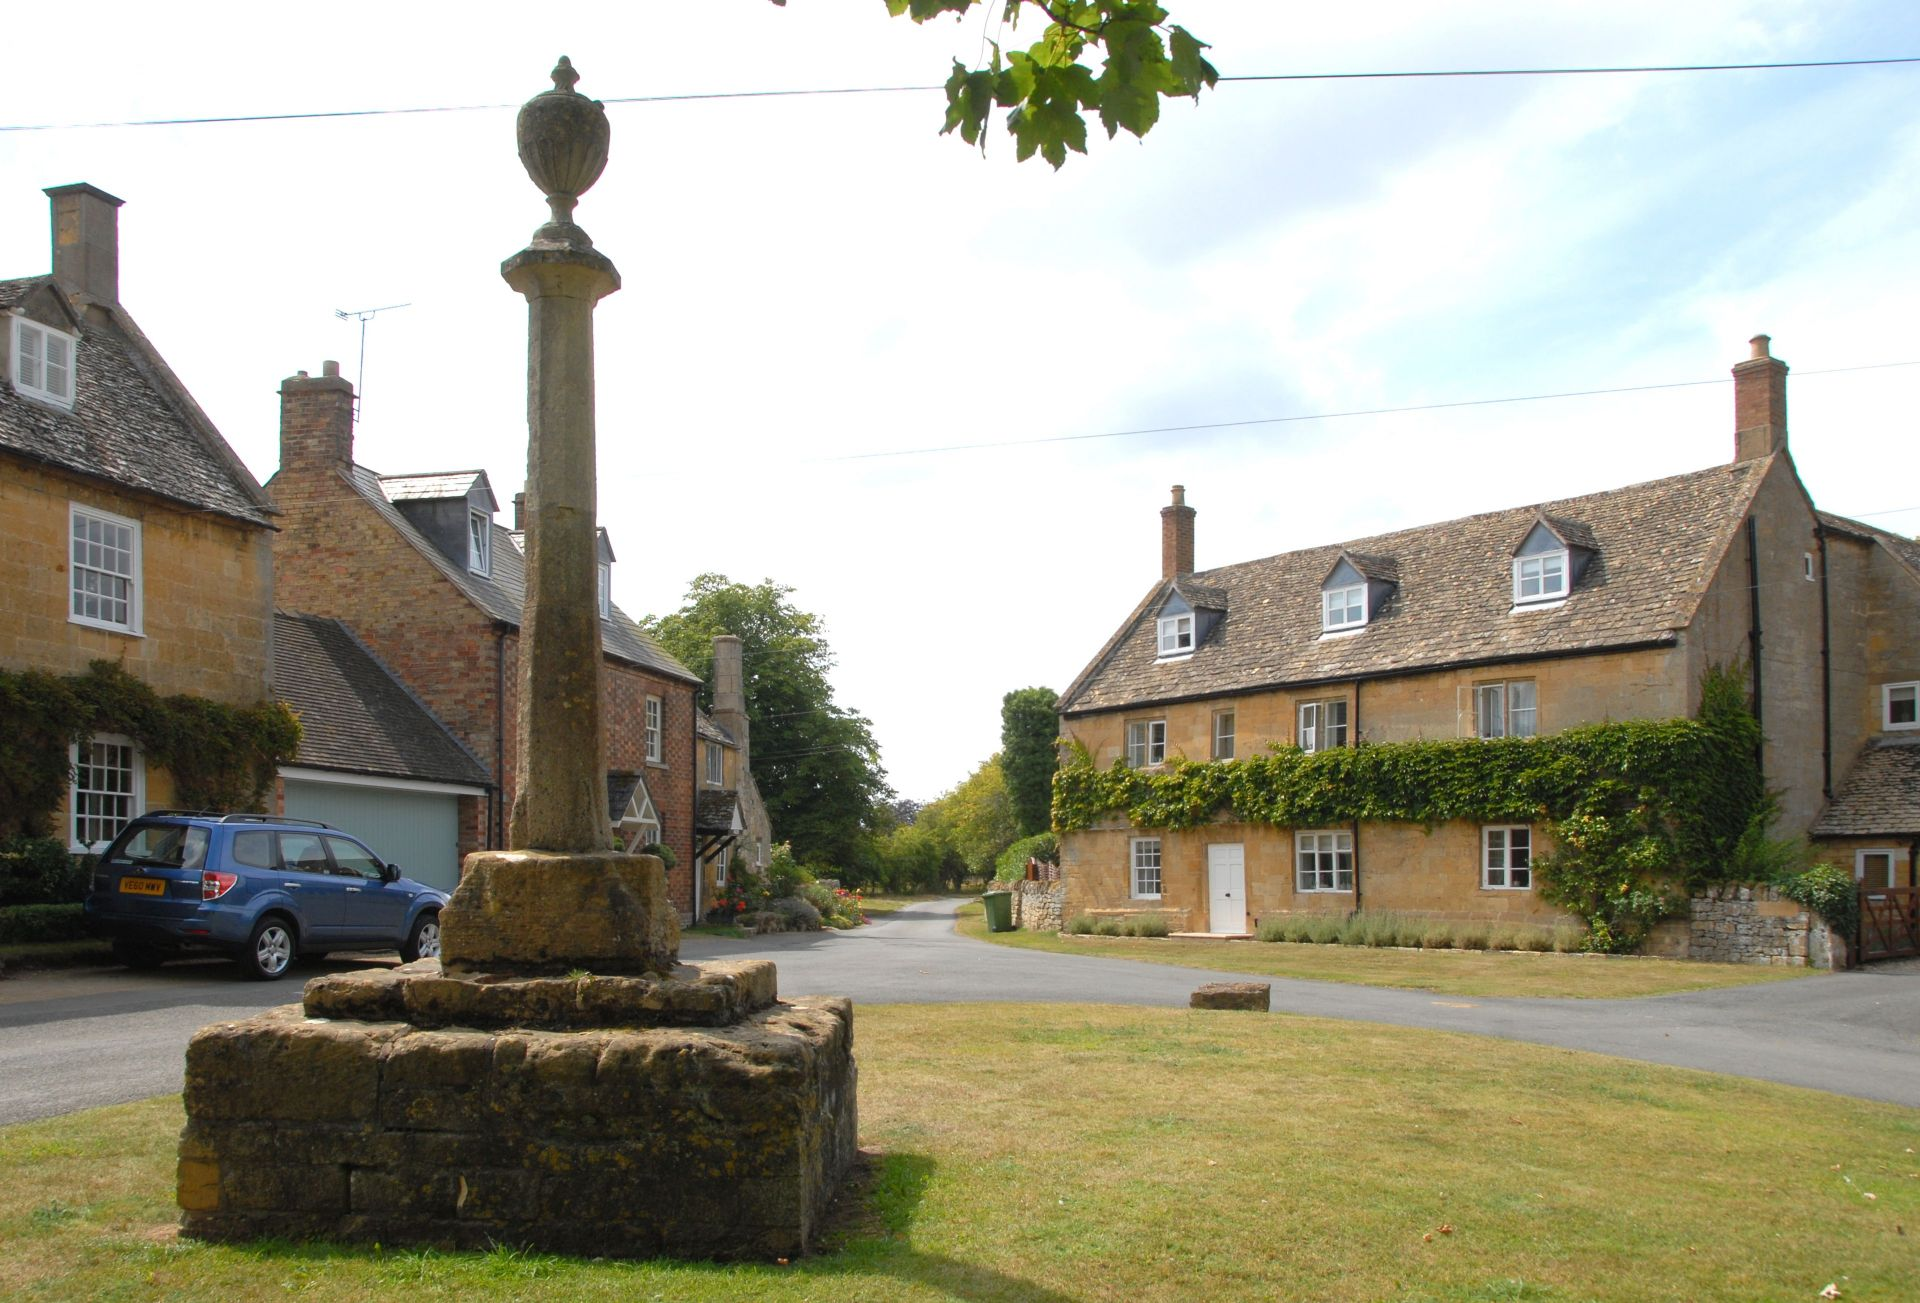 Another view of the village green